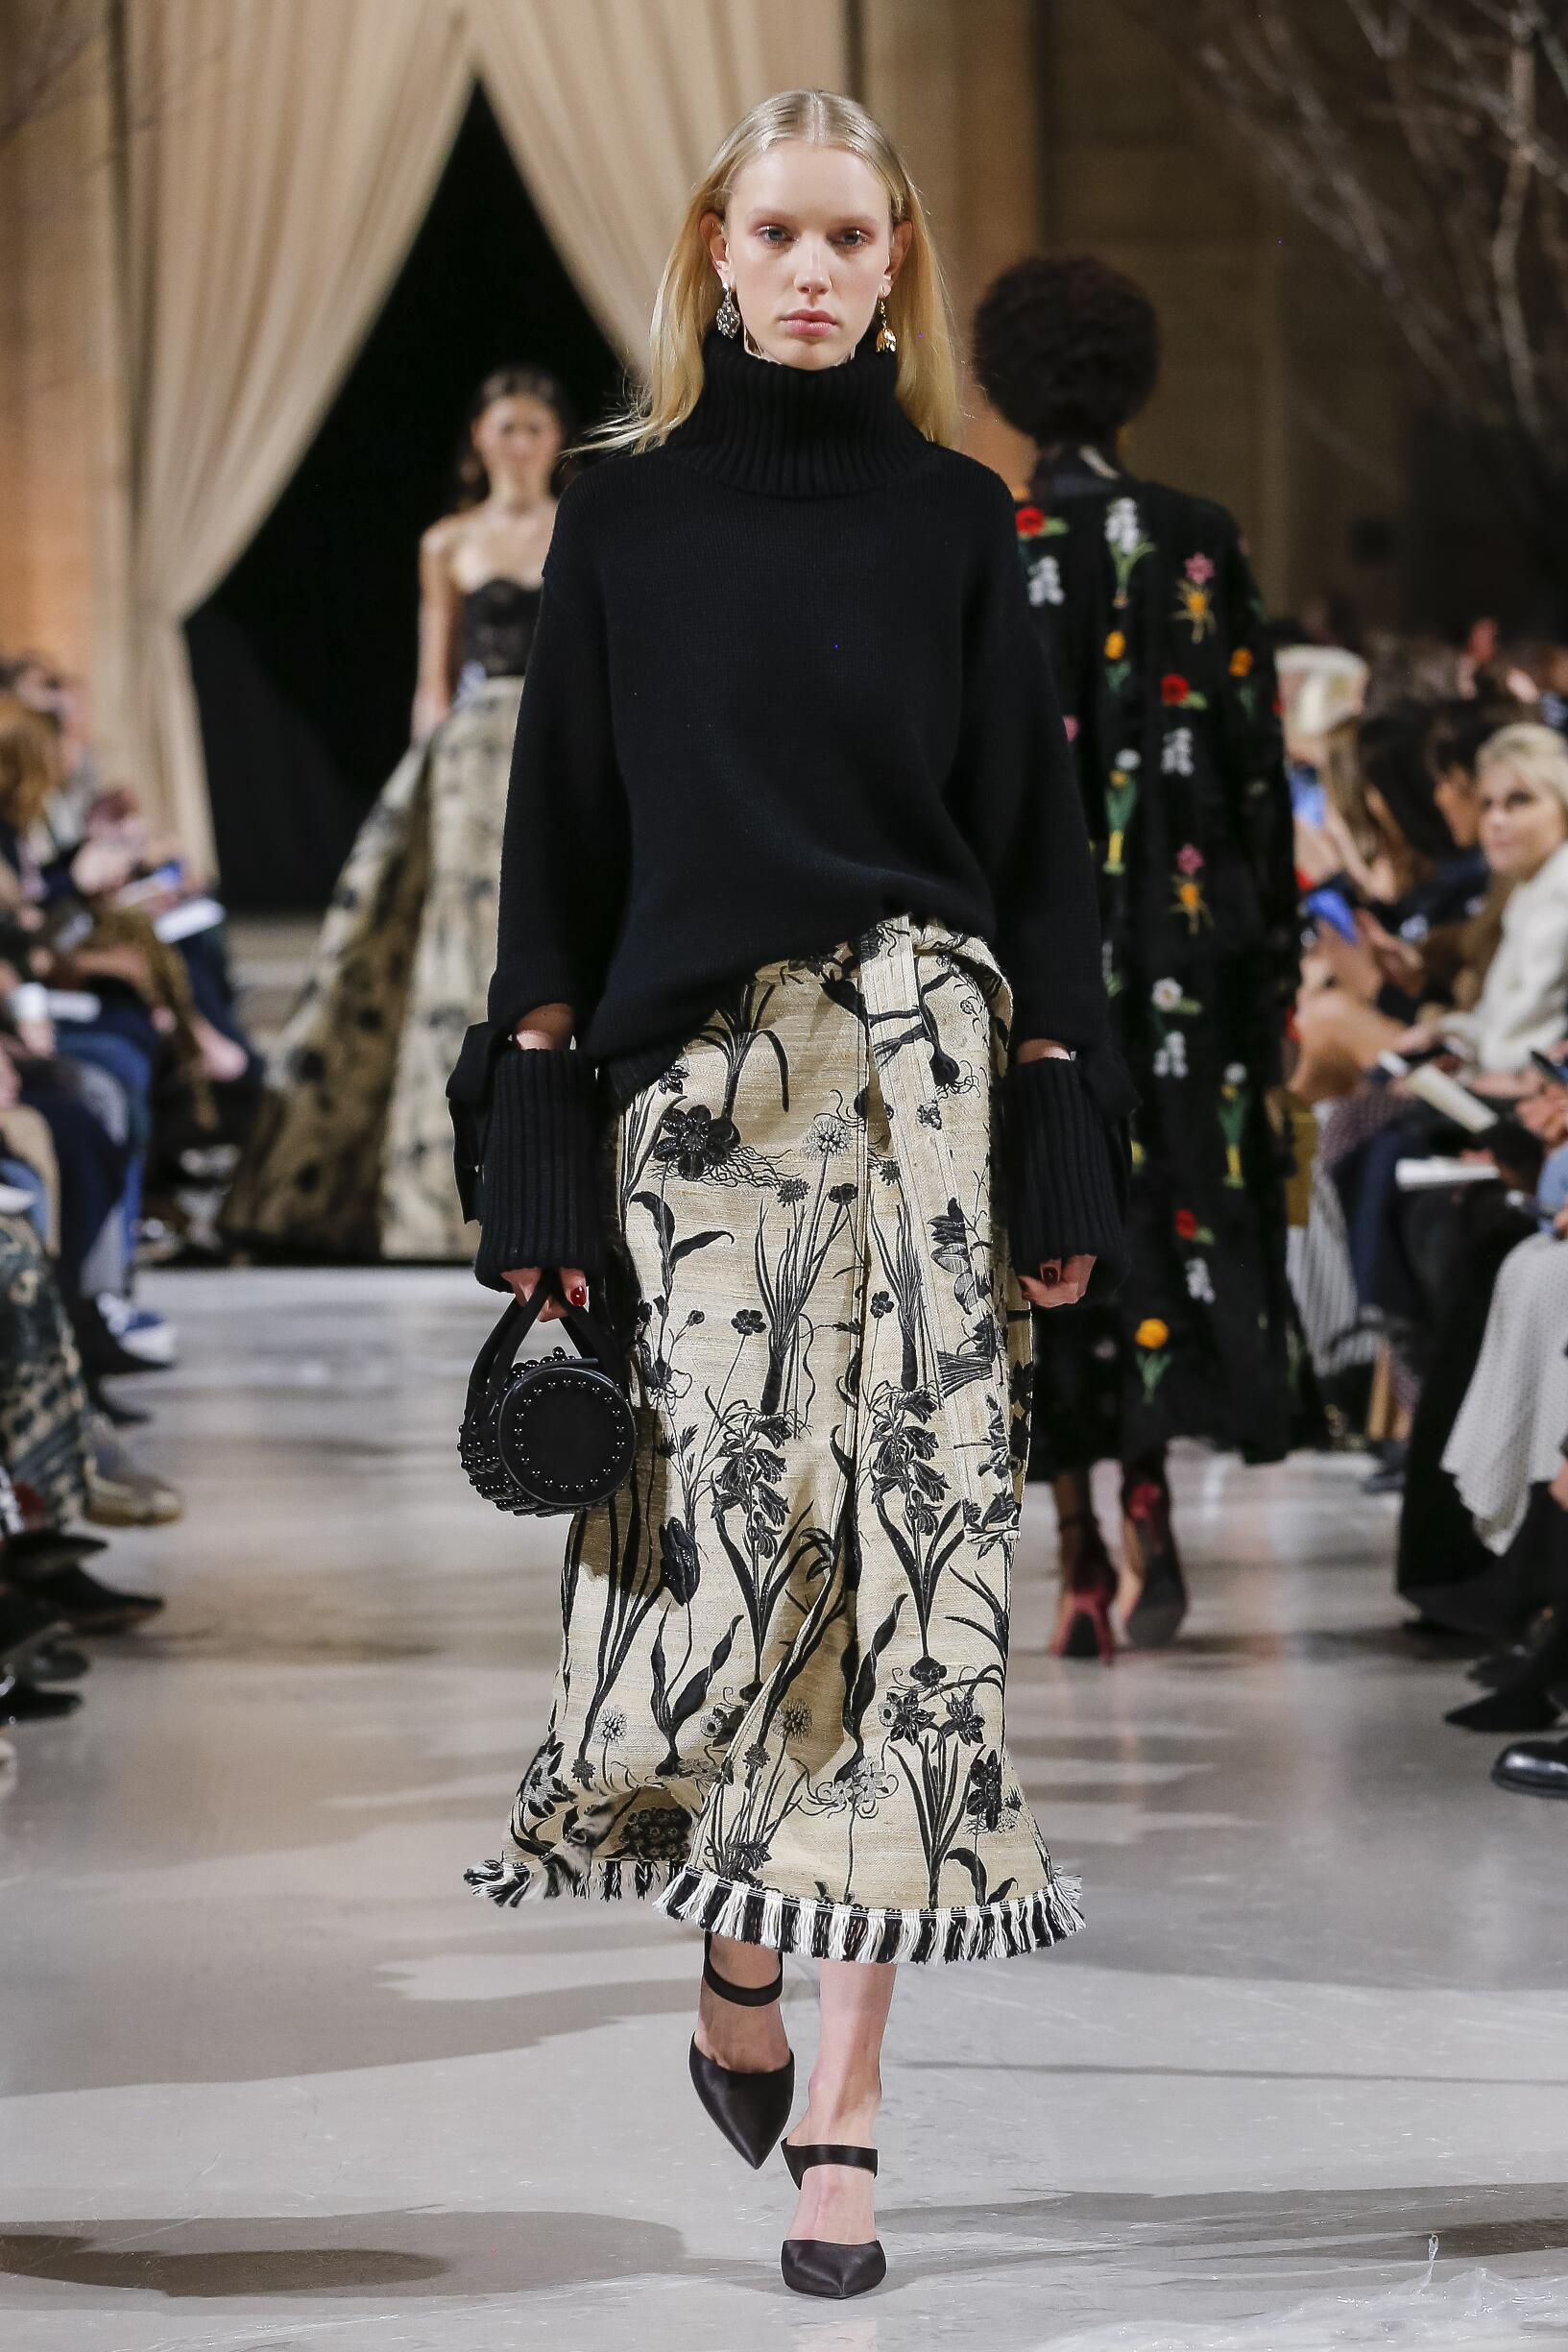 2018 Oscar de la Renta Fall Winter Woman